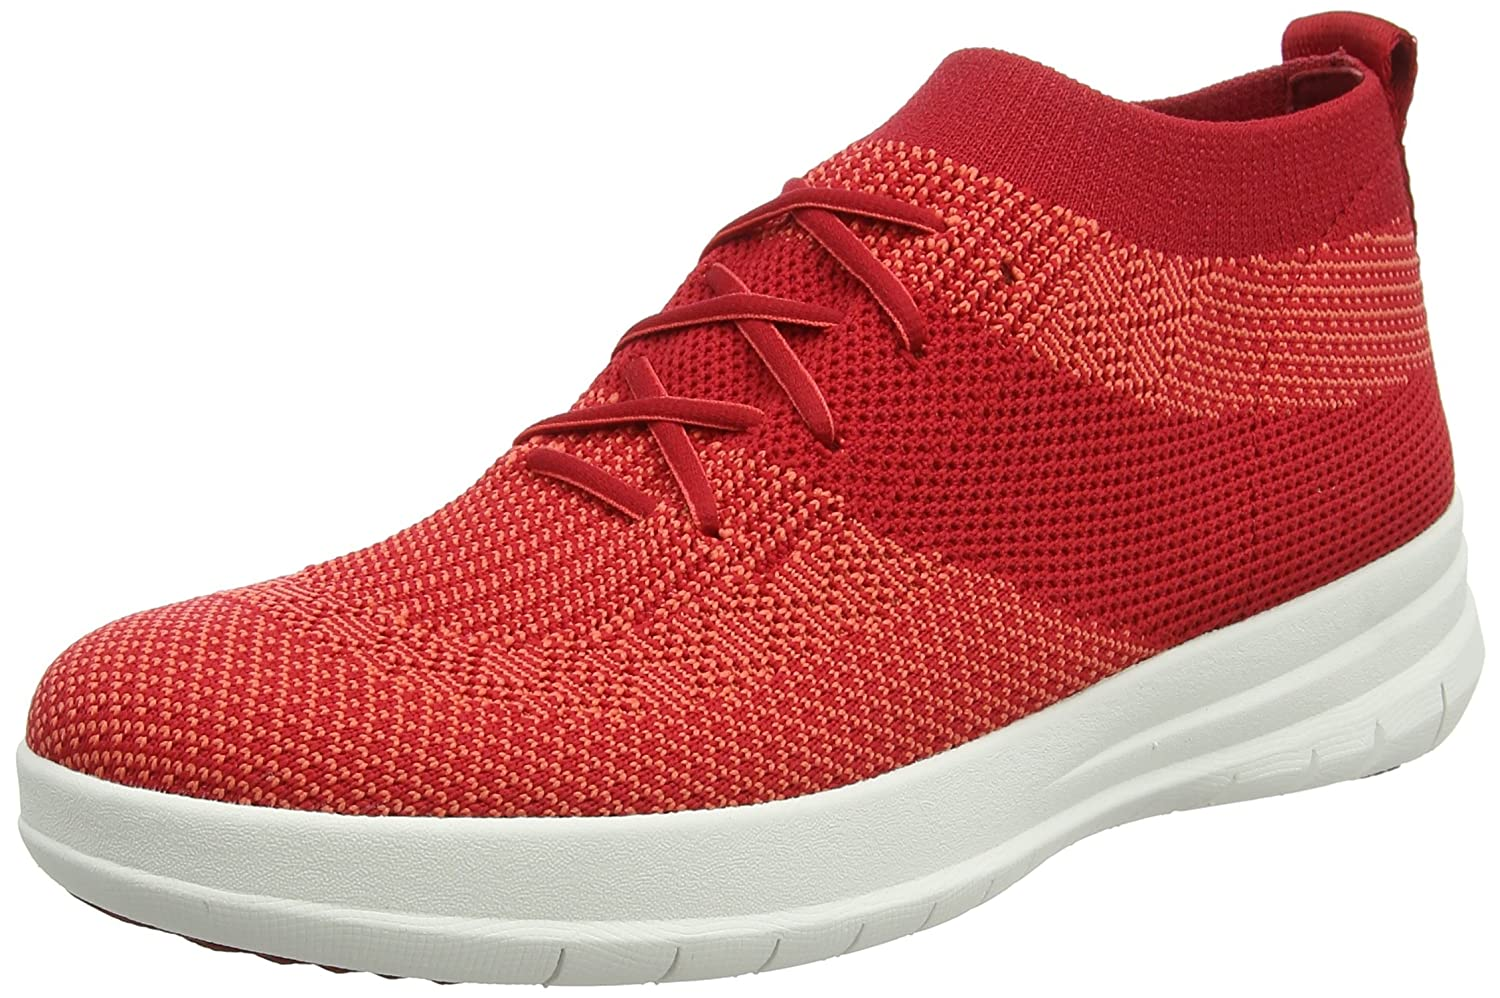 FitFlop Womens Uberknit Slip-On High-Top Sneaker B06XRLQTBF 7 B(M) US|Classic Red